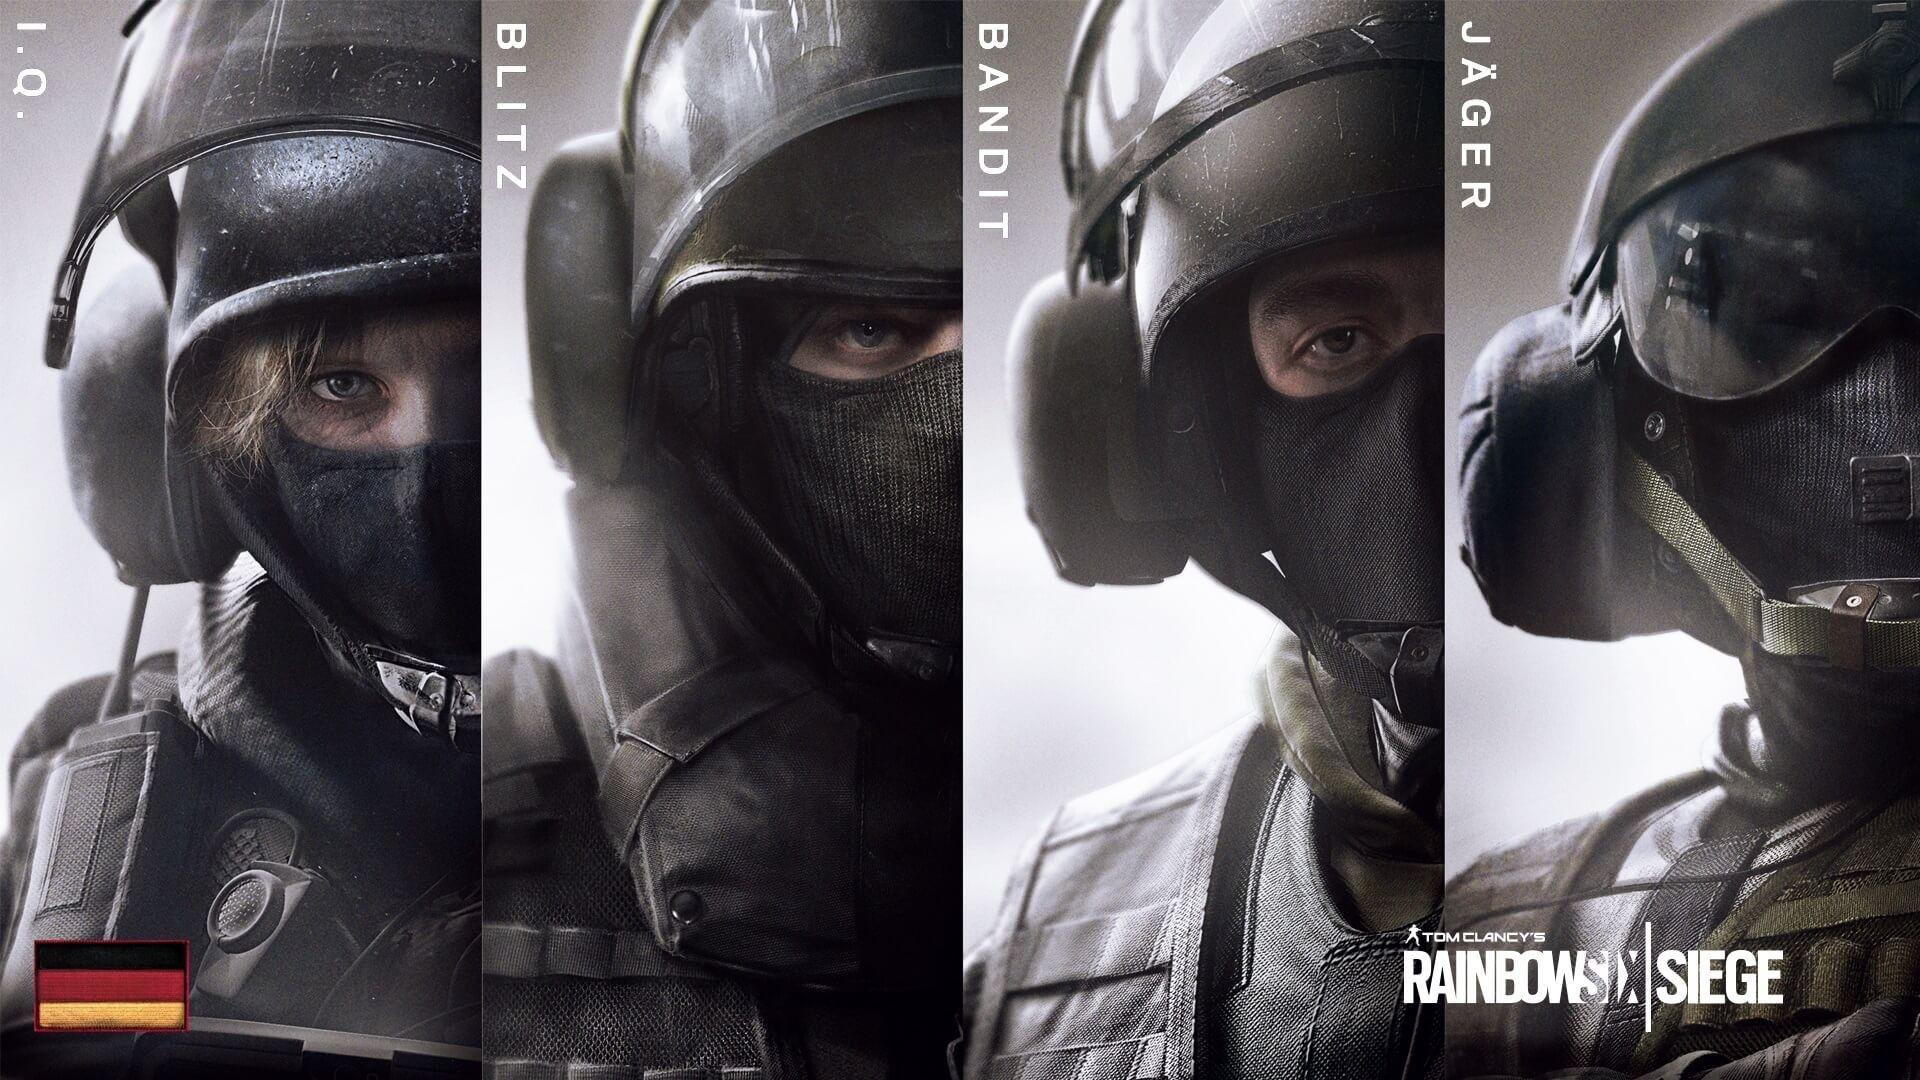 Rainbow Six: Siege wallpapers free, 448 kB